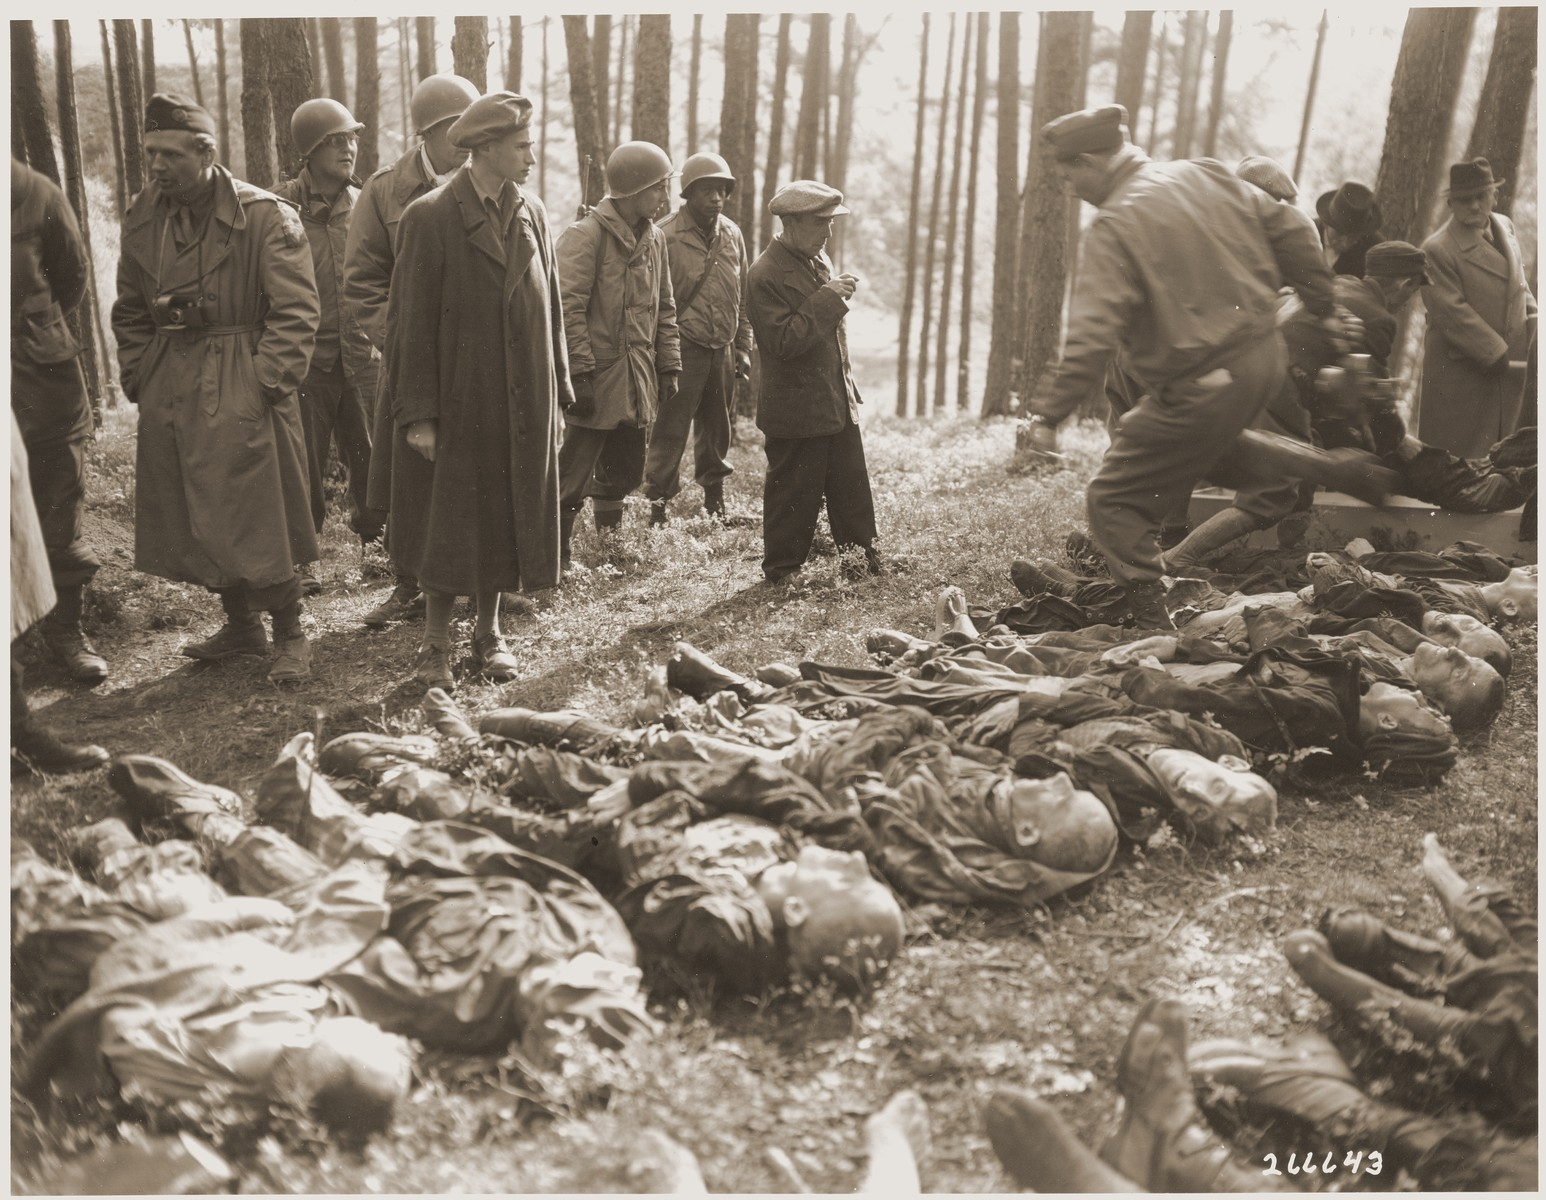 A seventeen-year-old Hungarian Jewish boy identifies the body of his father, who was among the concentration camp prisoners from Flossenbuerg shot in the woods near Neunburg vorm Wald while on a death march.